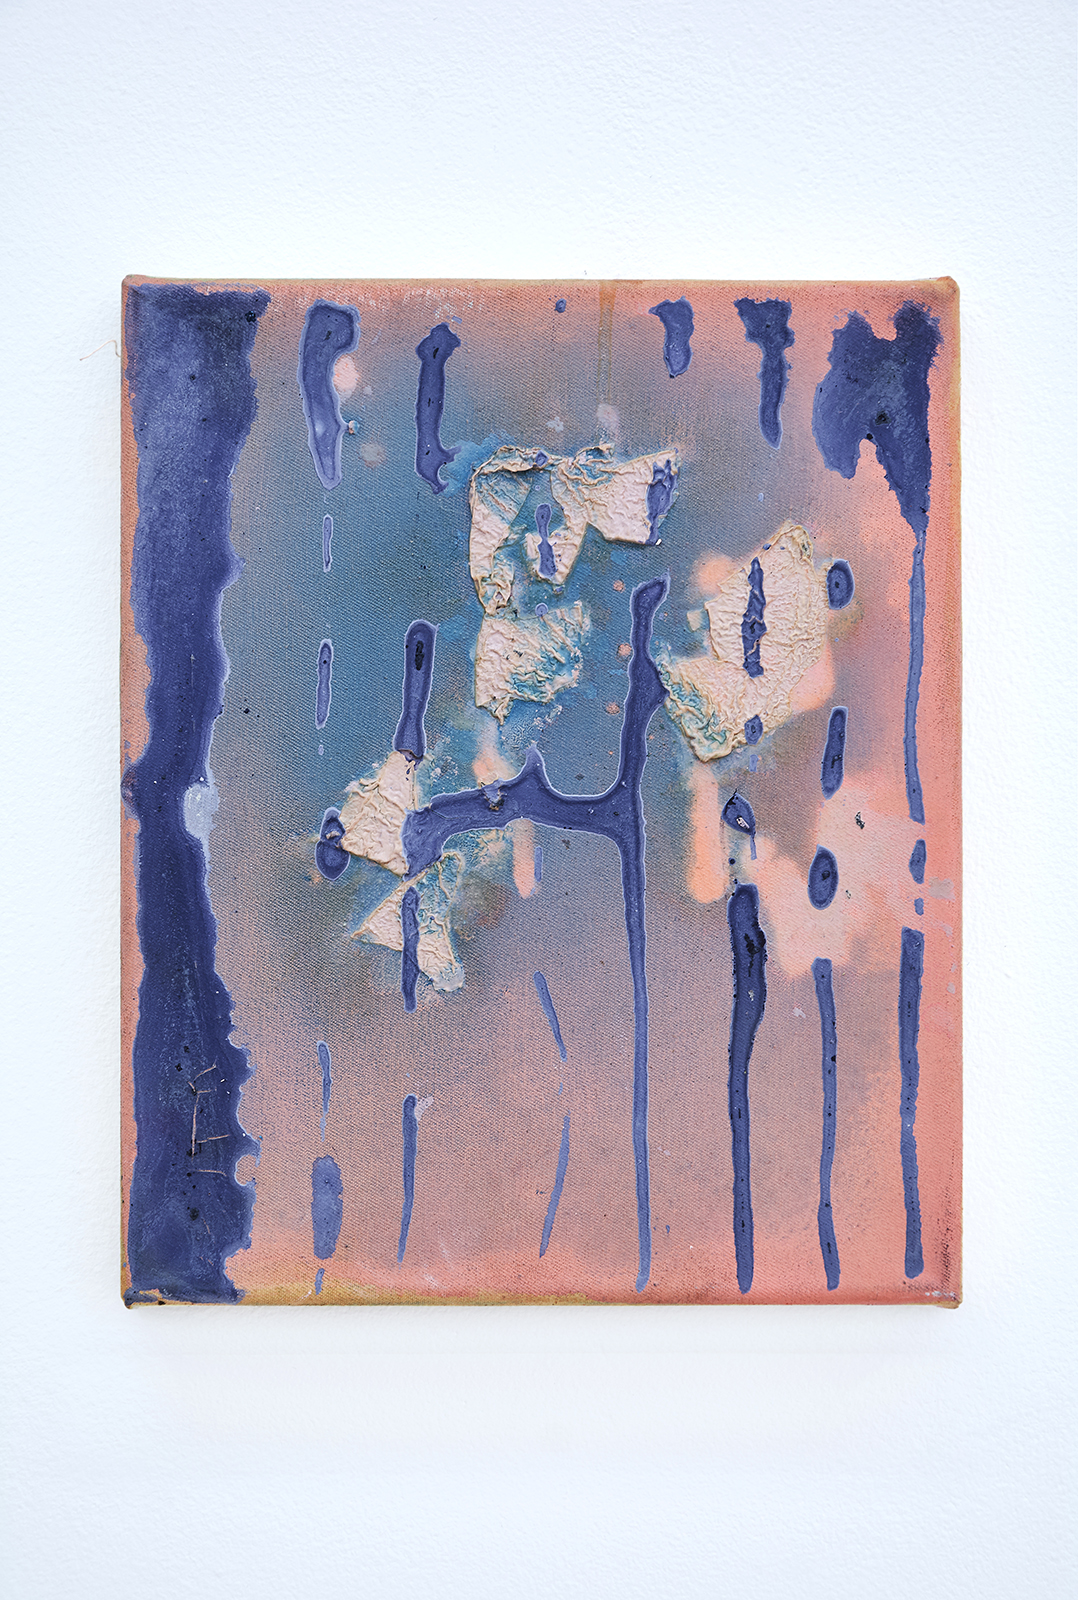 Anna Schachinger, Untitled, 2015. Oil and gesso on canvas, 22 x 27 cm (8.5 x 10.5 in.)